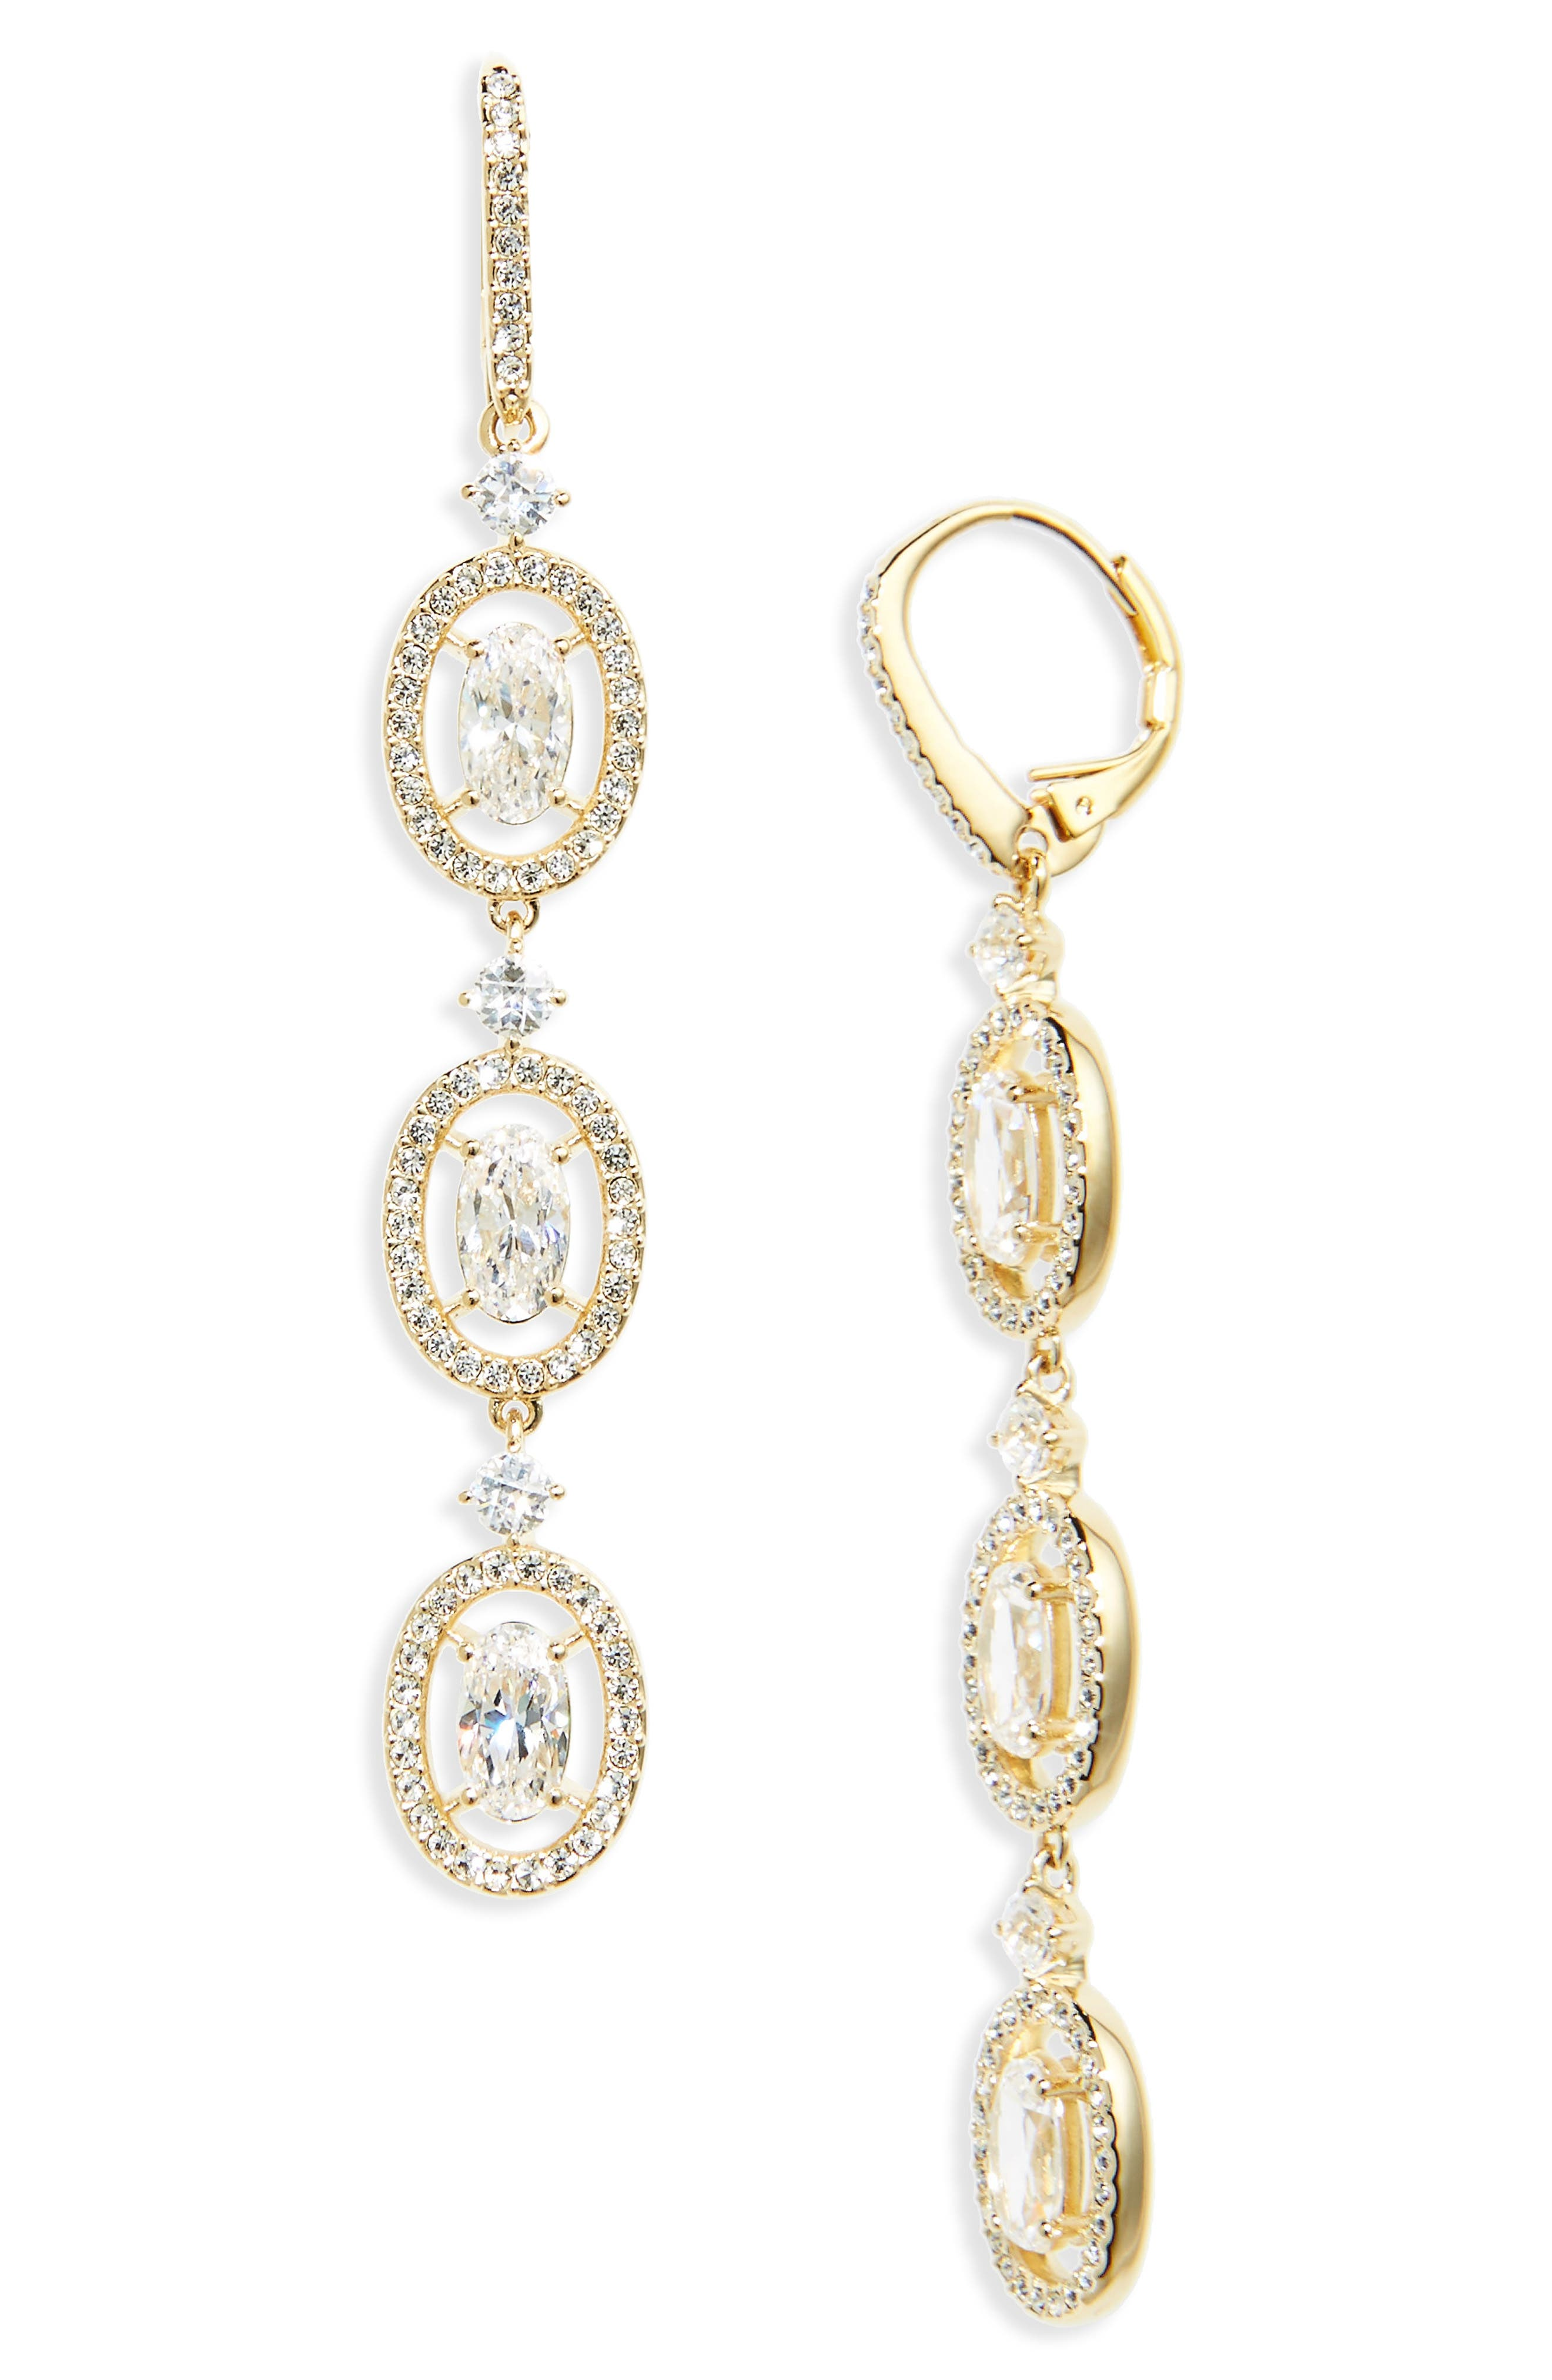 Oval Halo Drop Earrings,                         Main,                         color, GOLD